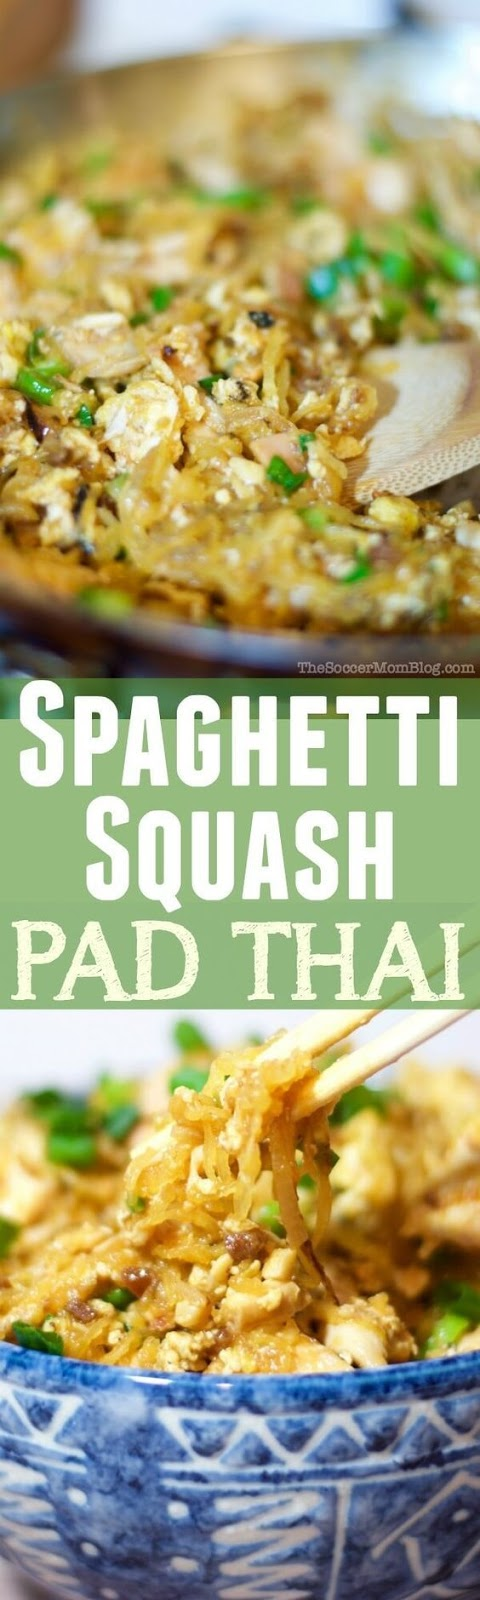 A healthy Spaghetti Squash Pad Thai recipe that tastes so amazing, you'd almost swear it's the real thing! Gluten Free, Paleo, & Keto sauce options!